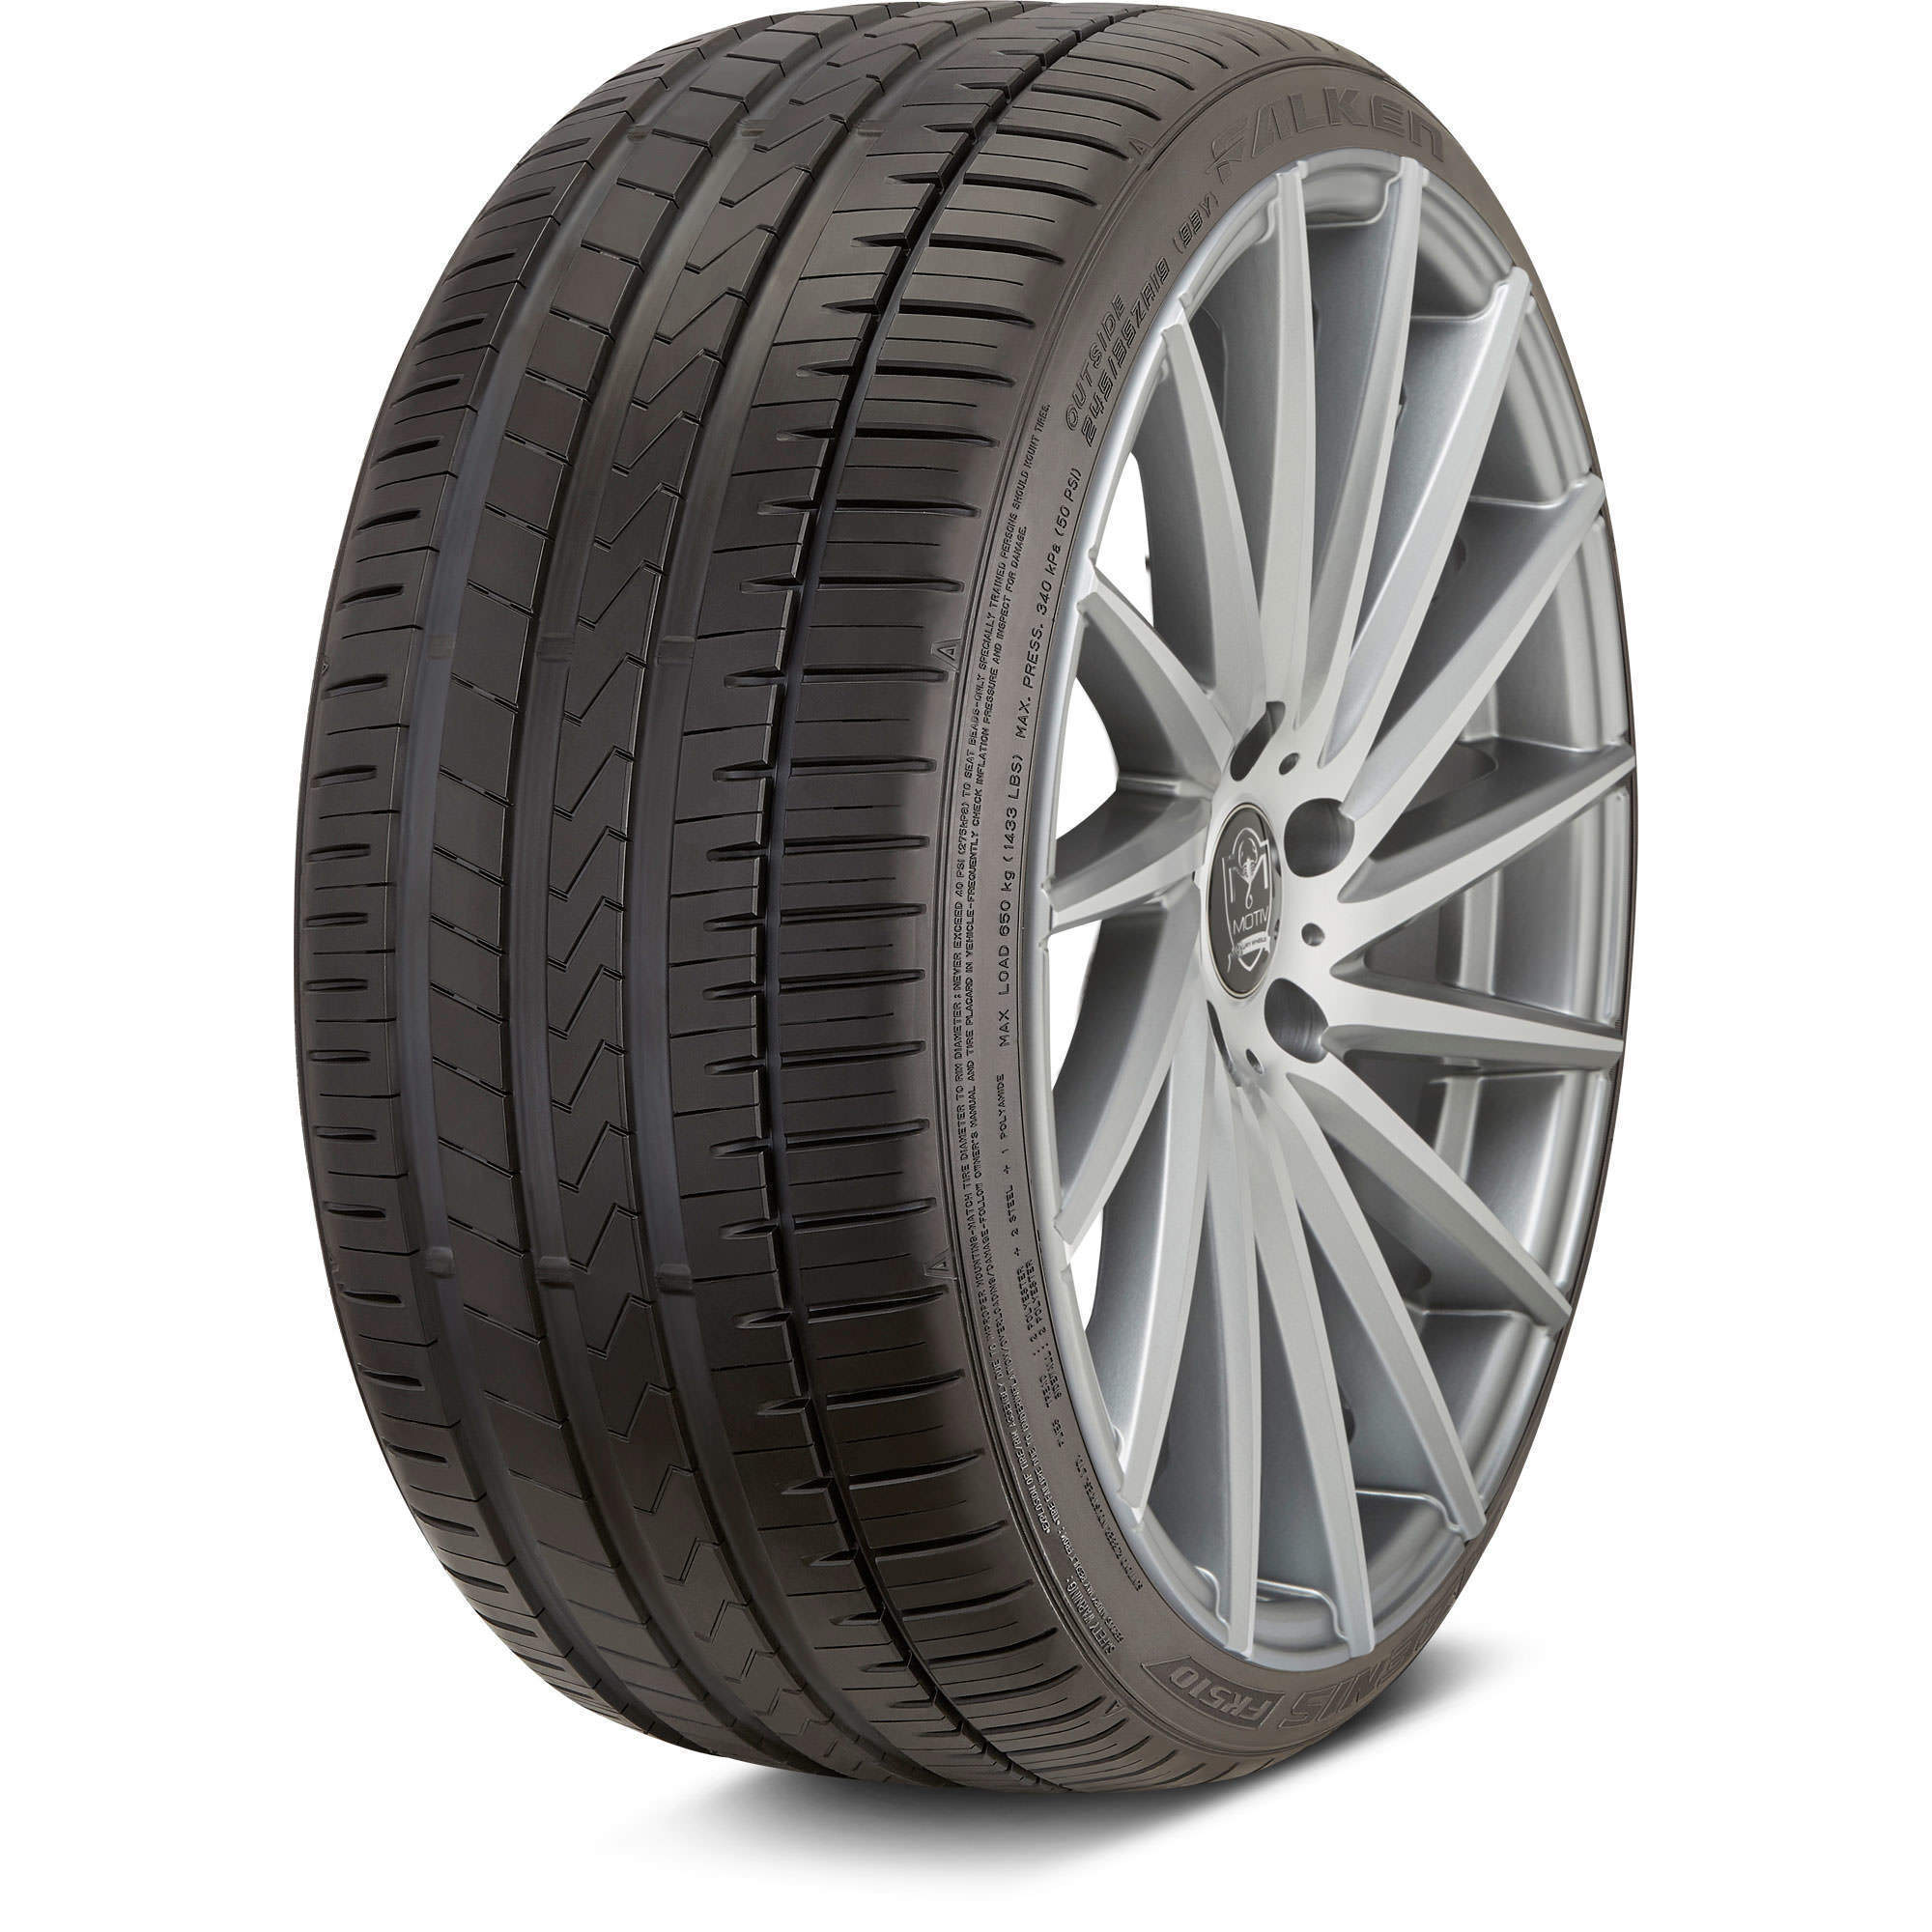 The TireBuyer story. We've been selling tires and wheels online since But our roots and expertise in the tire industry go way deeper than that. We're part of the largest tire distributor in the United States – American Tire Distributors (ATD), in business since